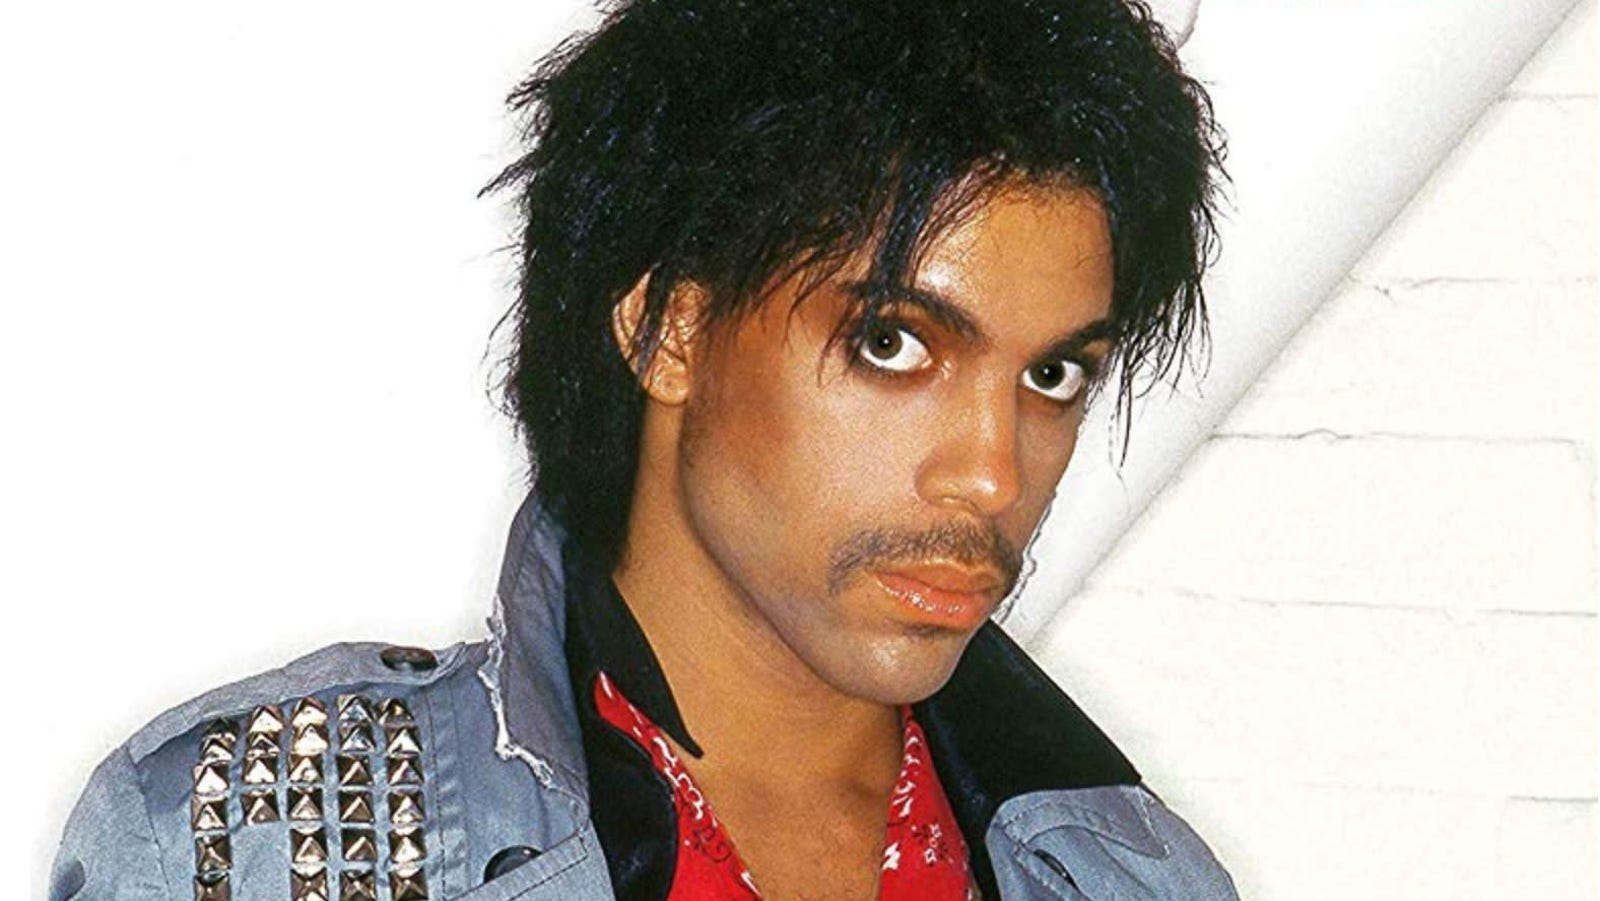 gigolos get lonely too by morris day and the time lyrics